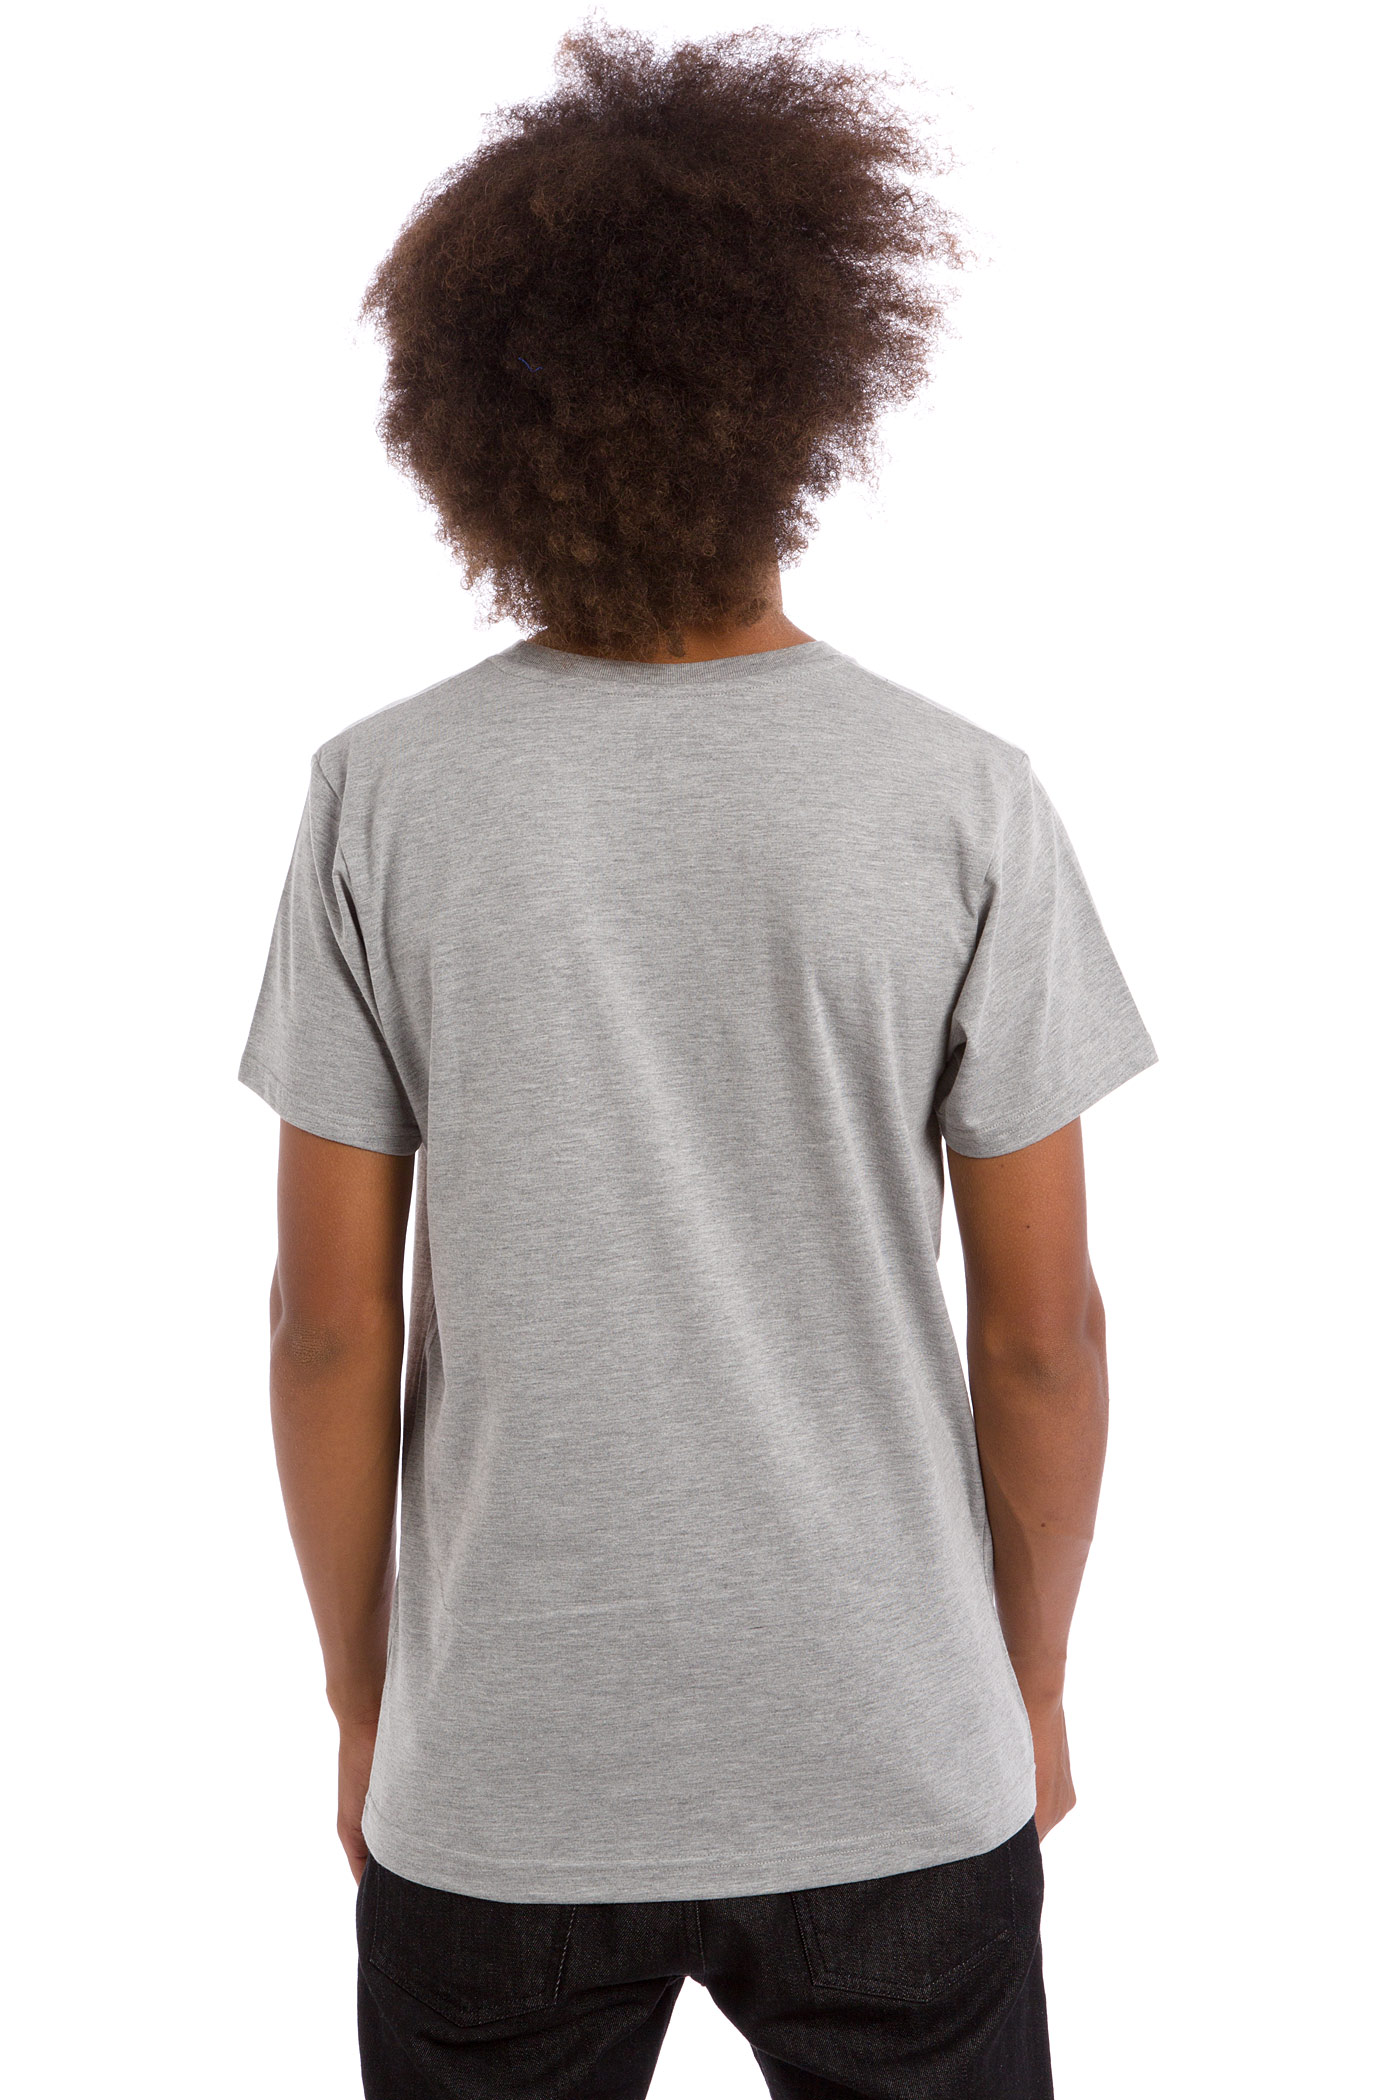 Sk8dlx Racer T Shirt Heather Grey Buy At Skatedeluxe